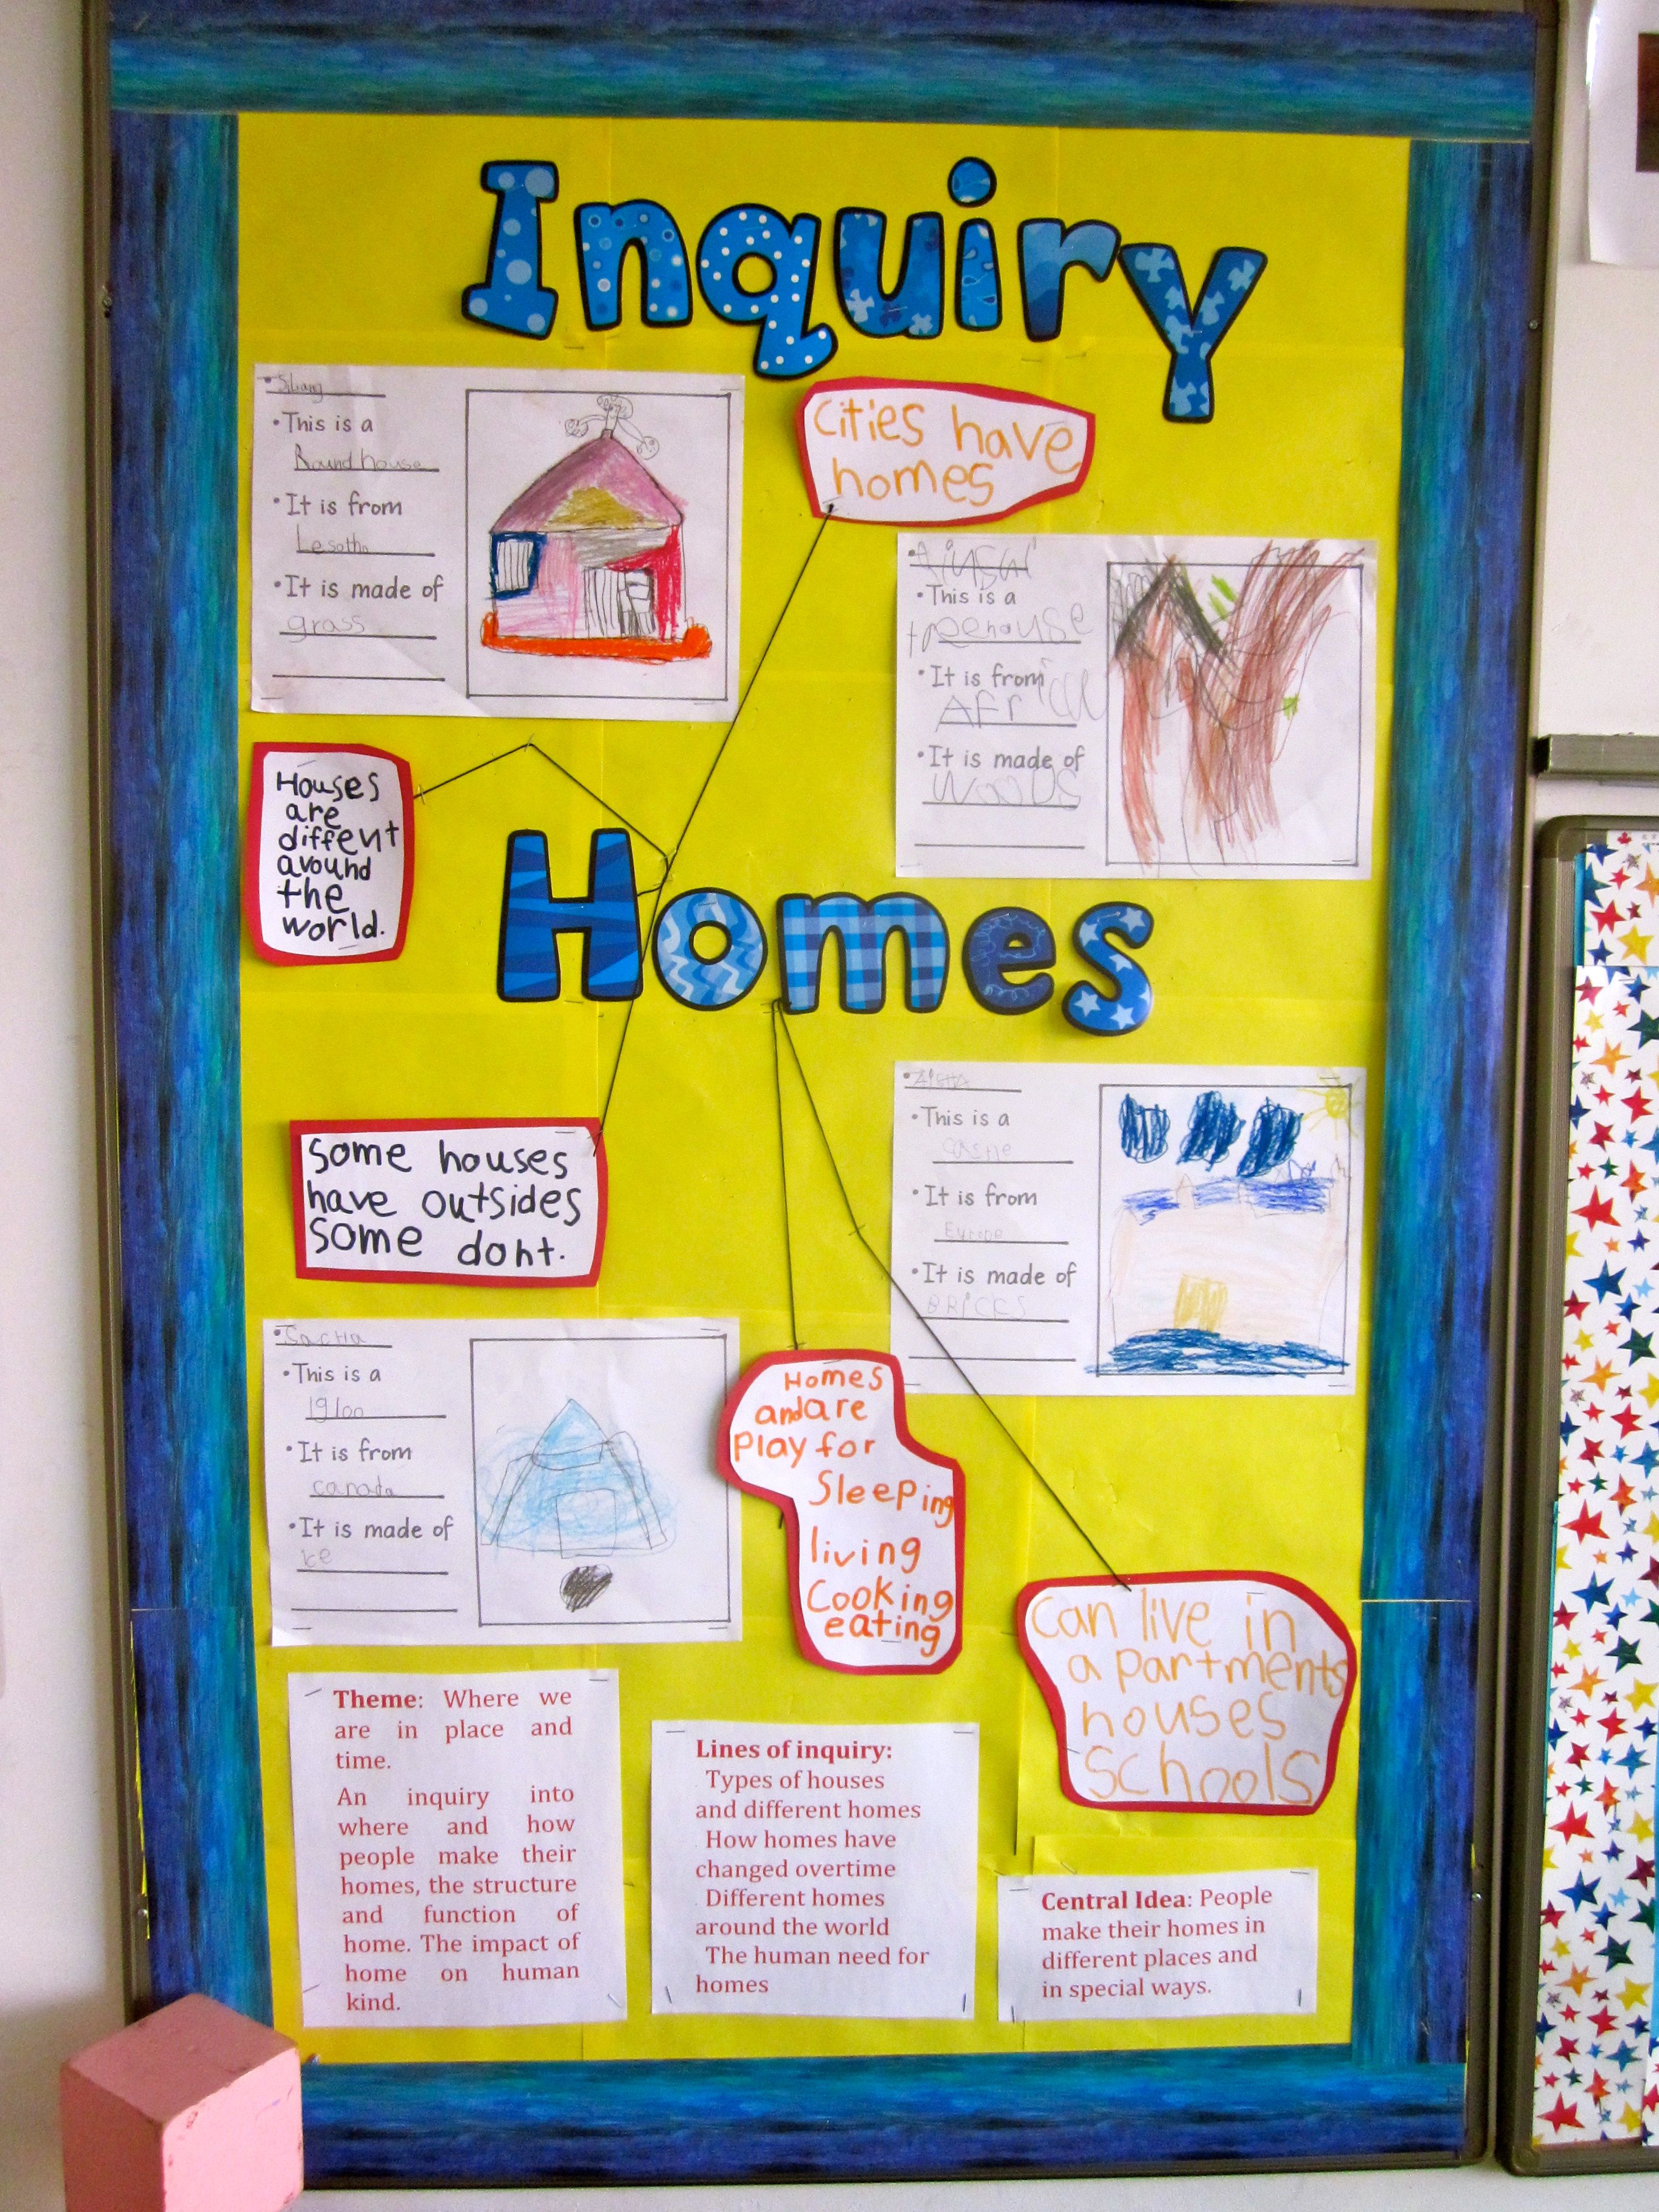 Pyp Kindergarten Made Board For Inquiry Into Homes Around The World